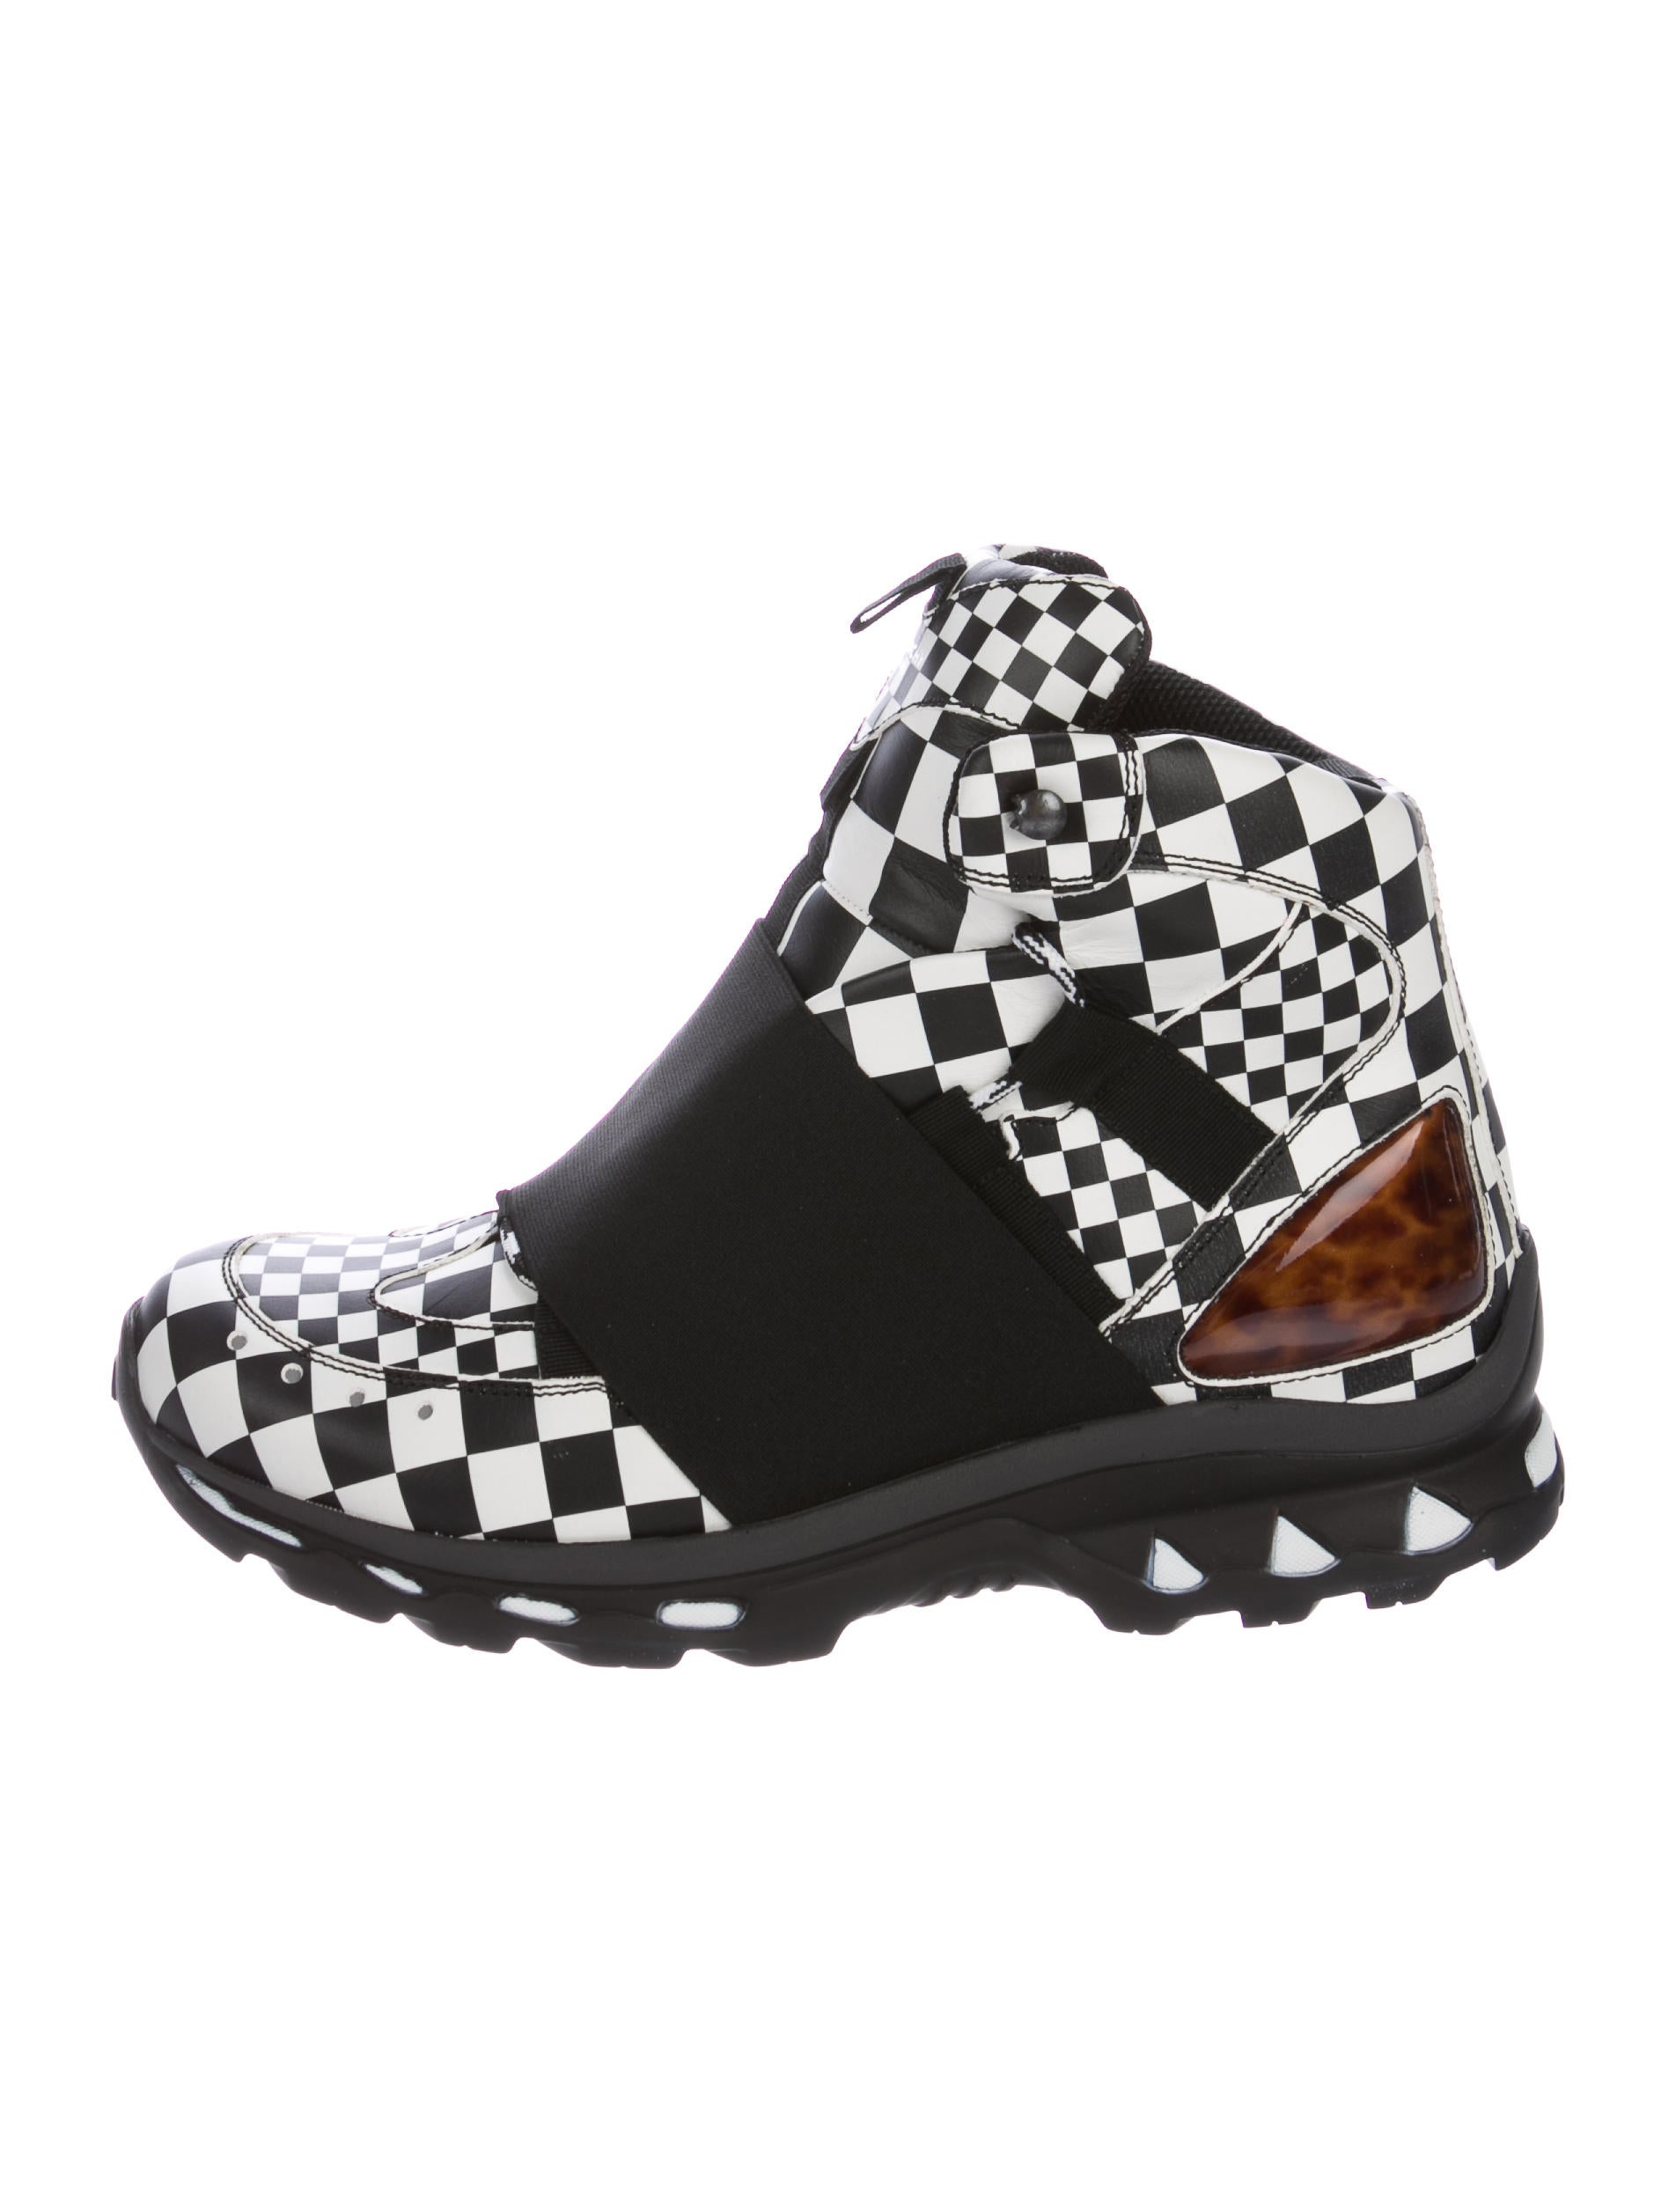 Givenchy Checkered Trail Boot Leather